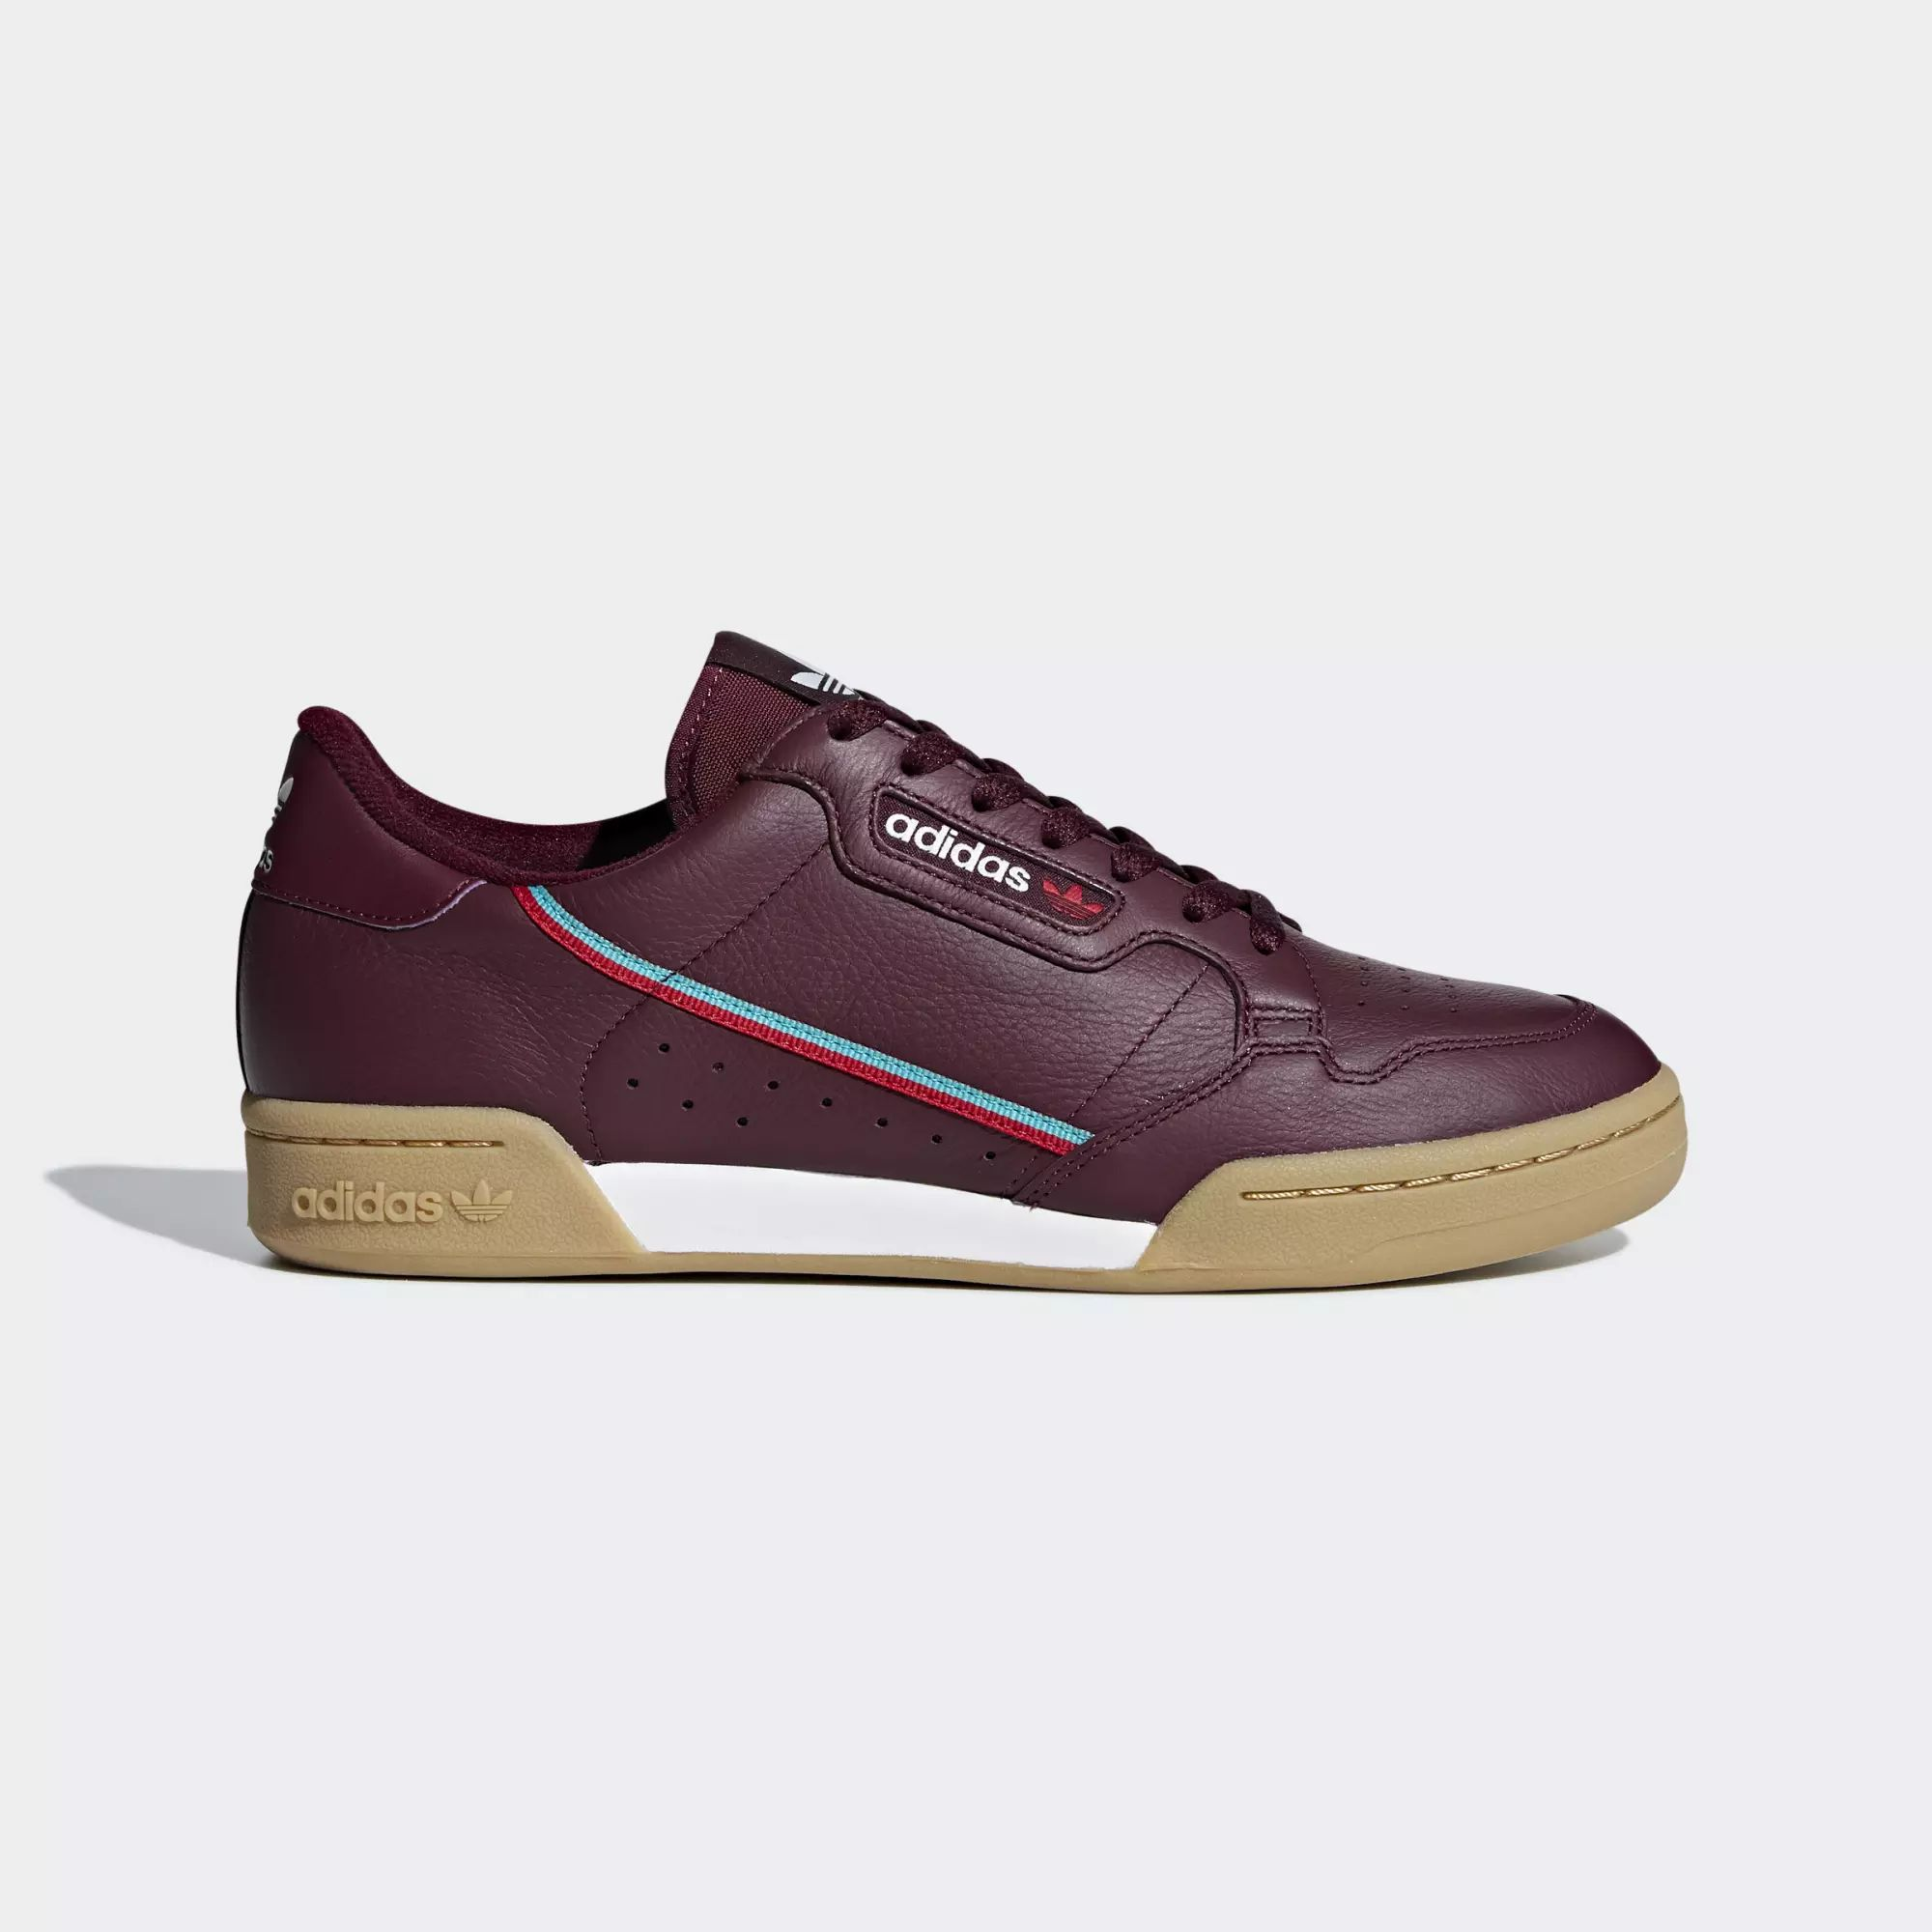 Adidas Continental 80 Shoes - Maroon / Scarlet / Hi-Res Aqua